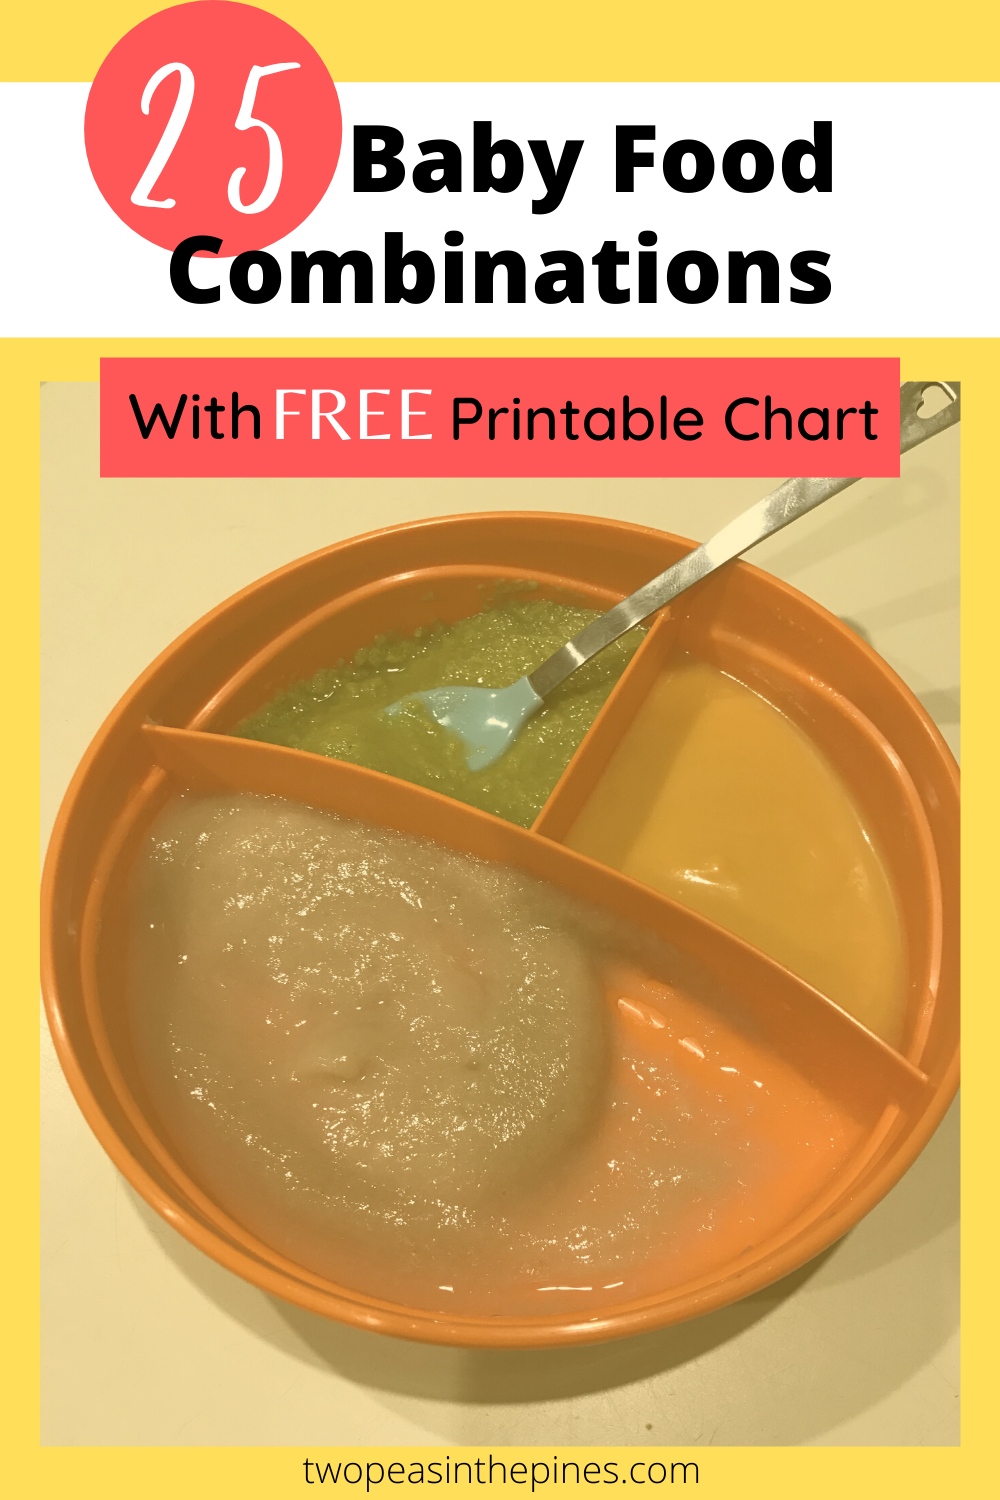 Baby Food Combinations With Free Printable Chart Baby Food Chart Baby Food Combinations Baby Food Recipes